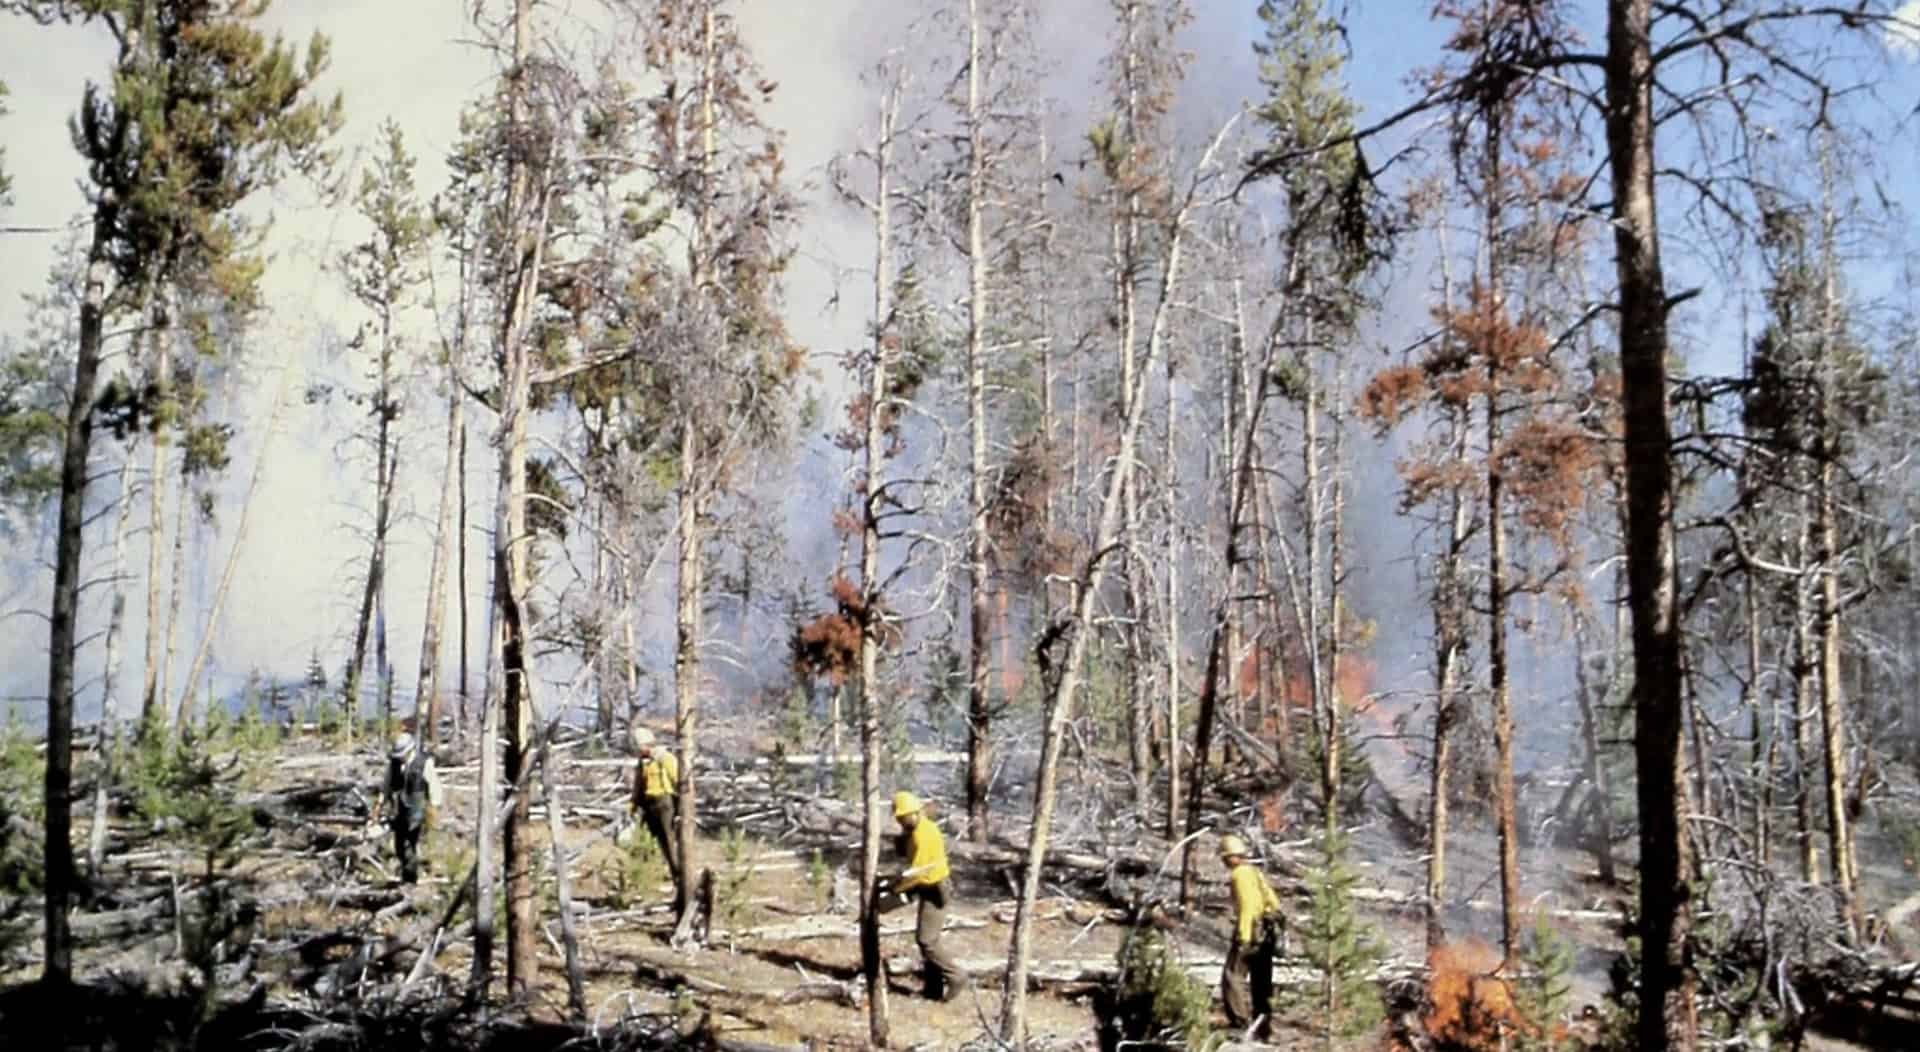 Prescribed fire in a mistletoe-infested pine stand